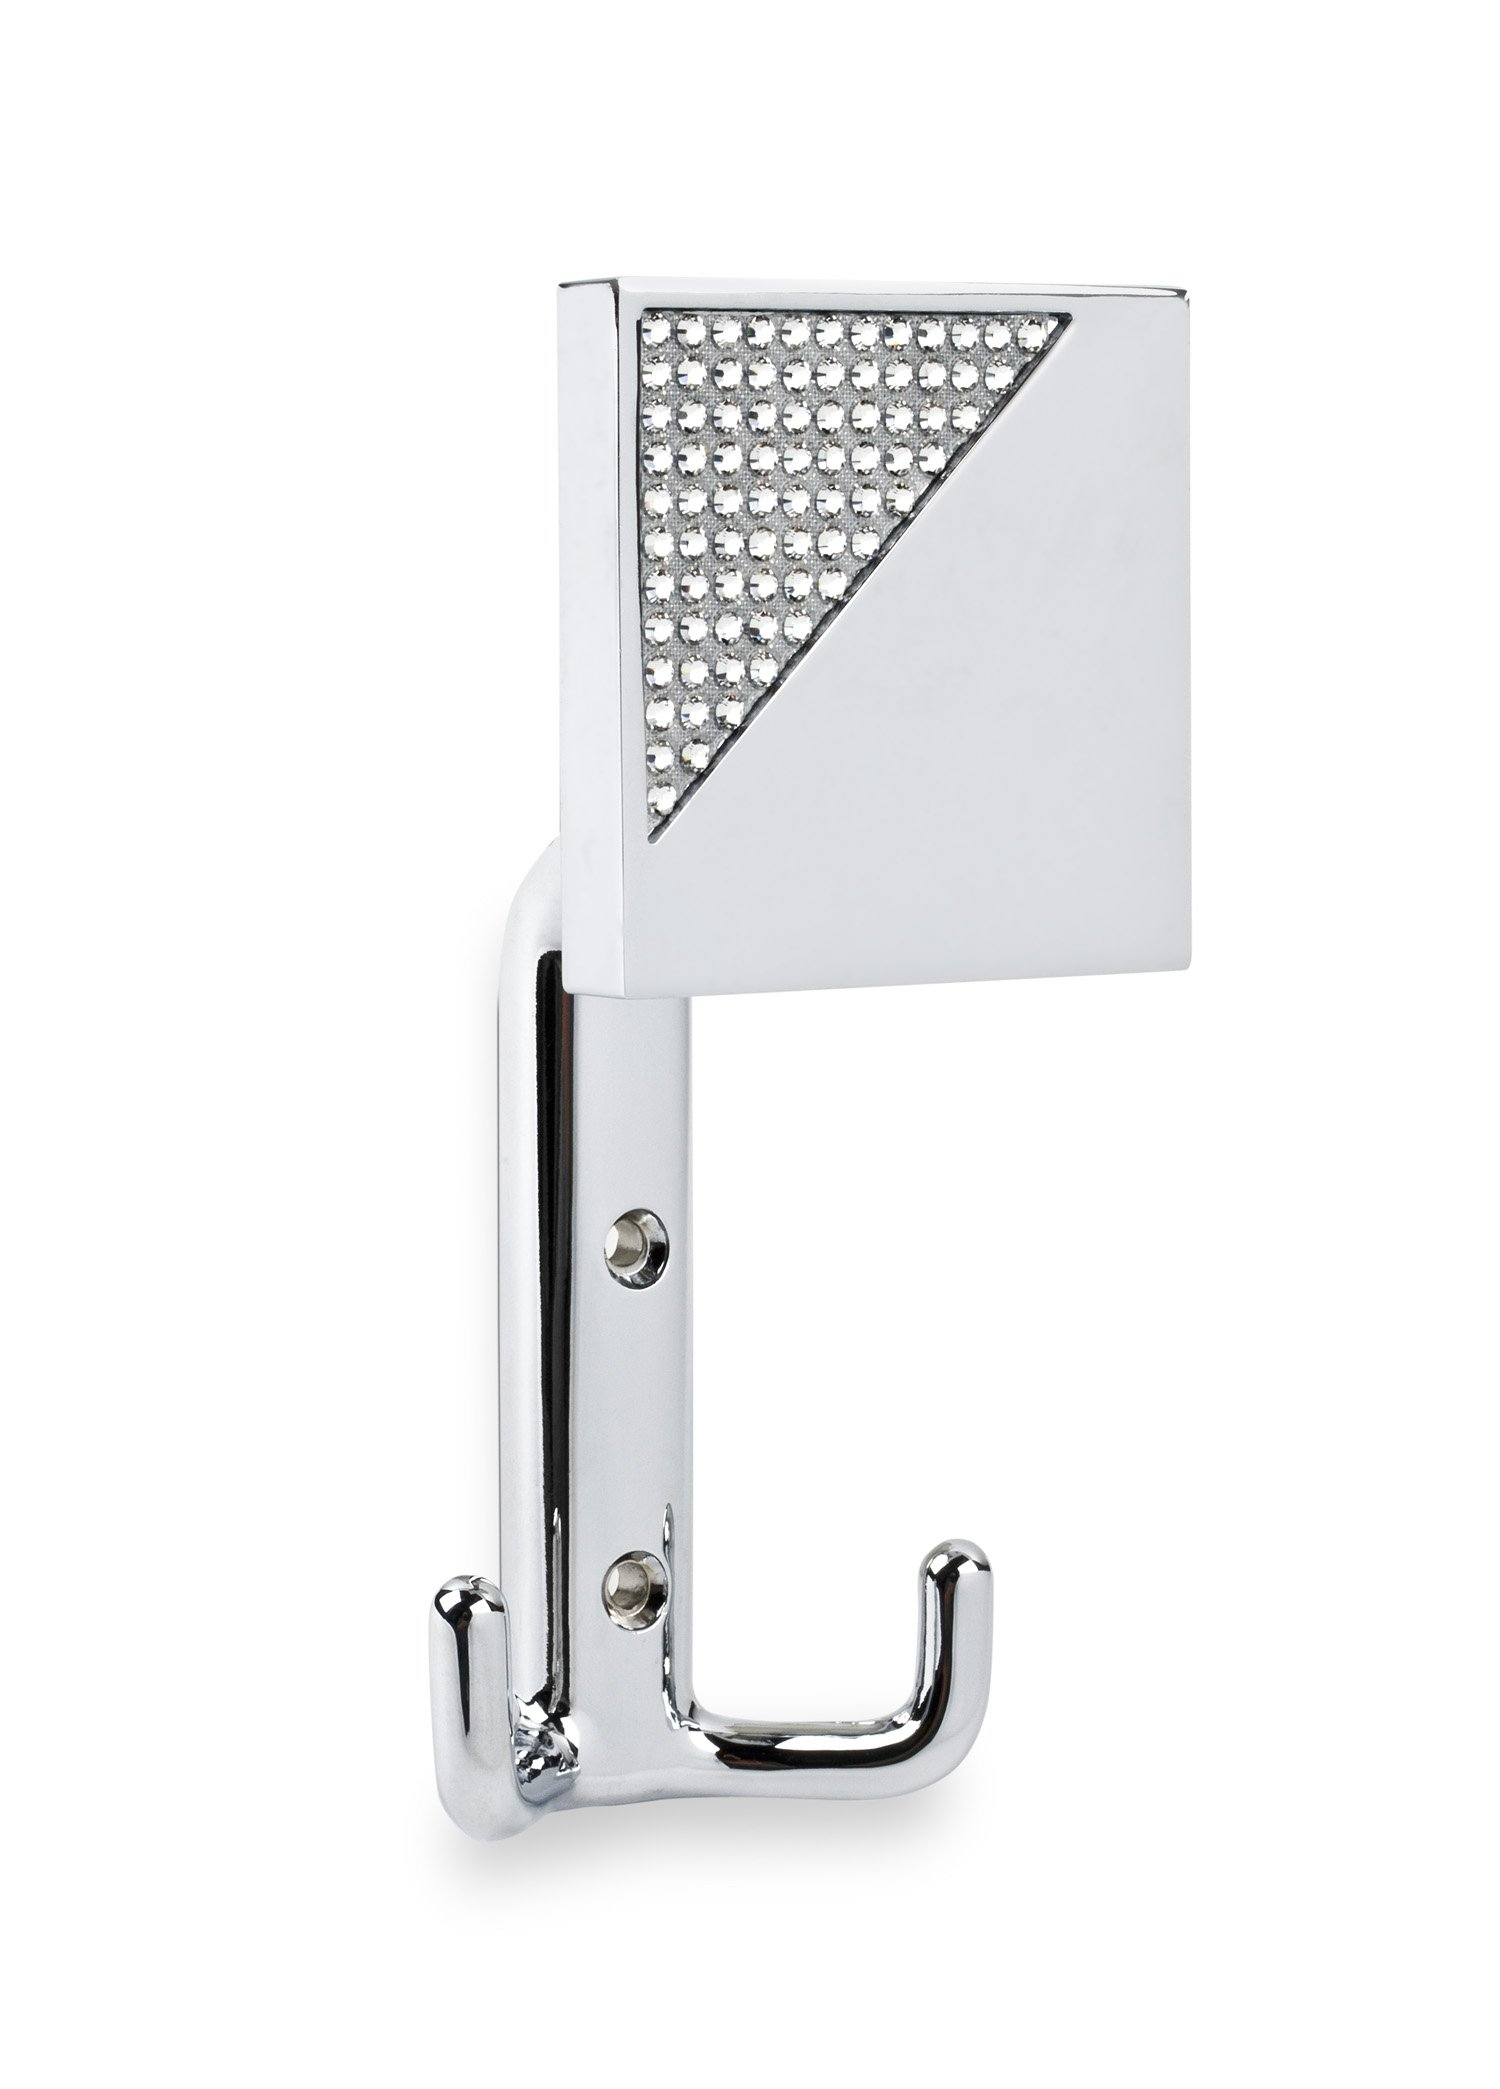 TOPEX HARDWARE P2040CRLSWA TOPEX HARDWARE P2040CRLSWA Robe and Towel Hook with Corner Crystals, Bright Chrome, , Bright Chrome